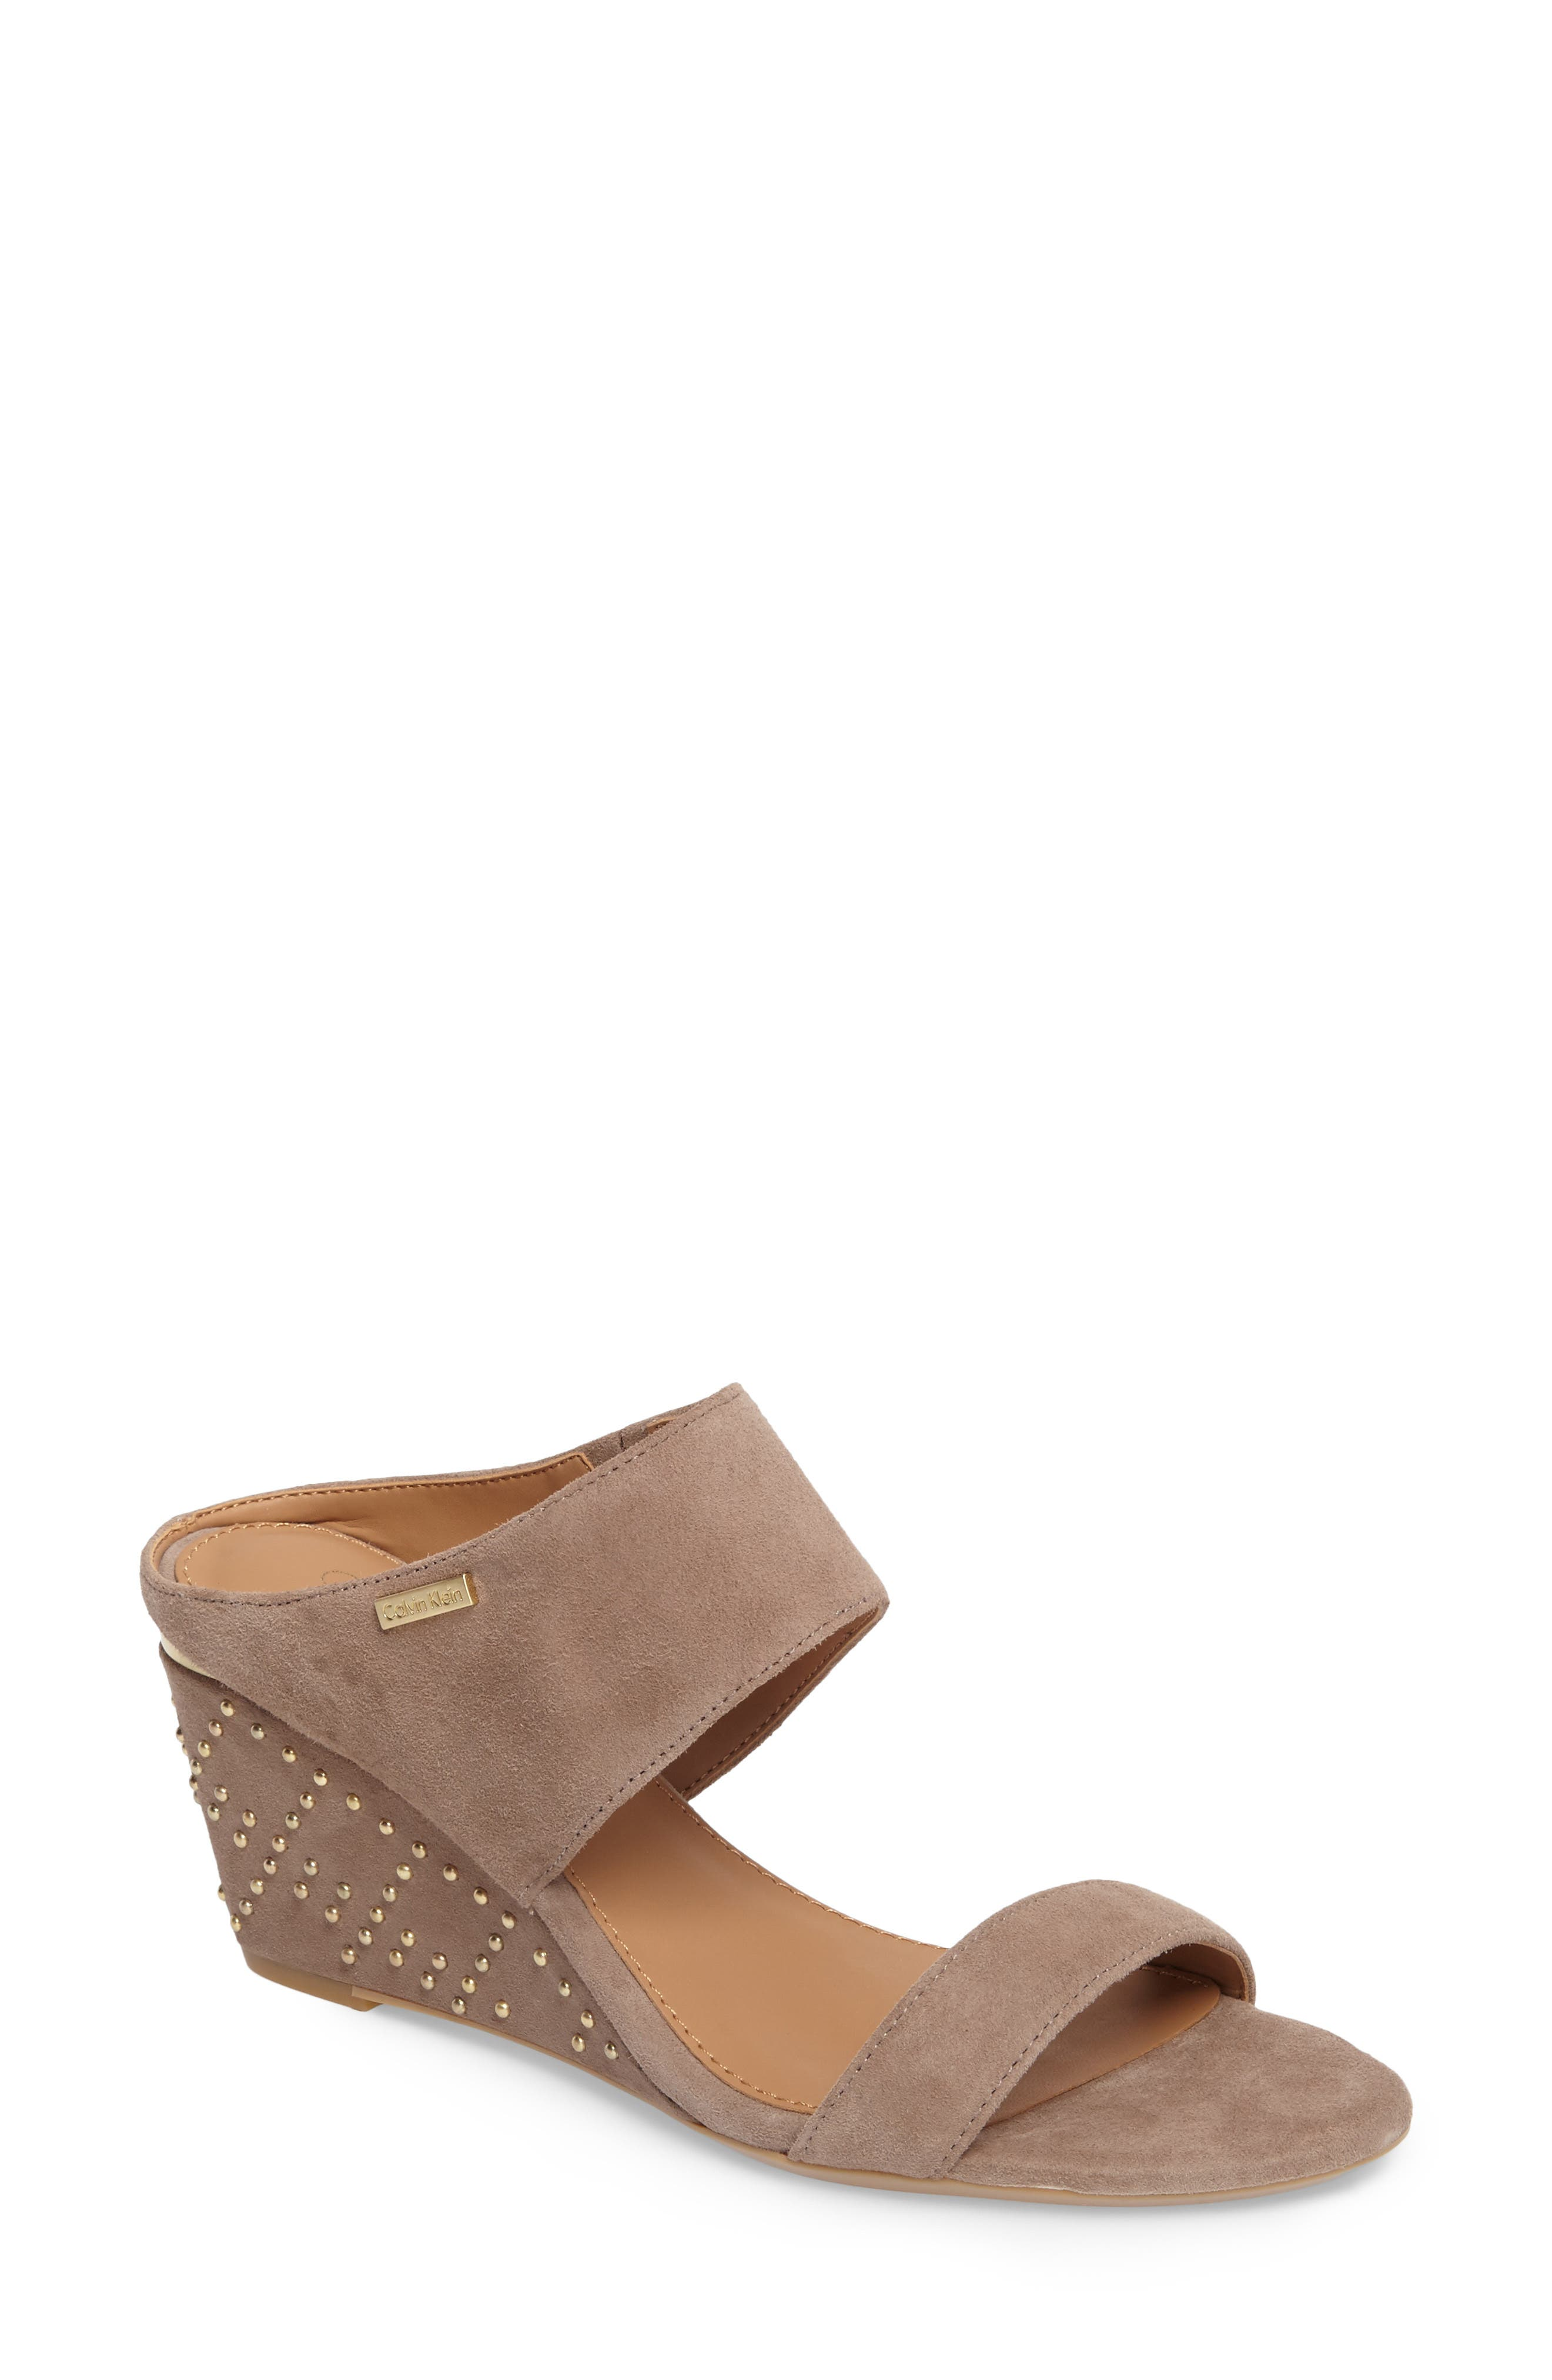 Phyllis Studded Wedge Sandal,                         Main,                         color, Winter Taupe Suede